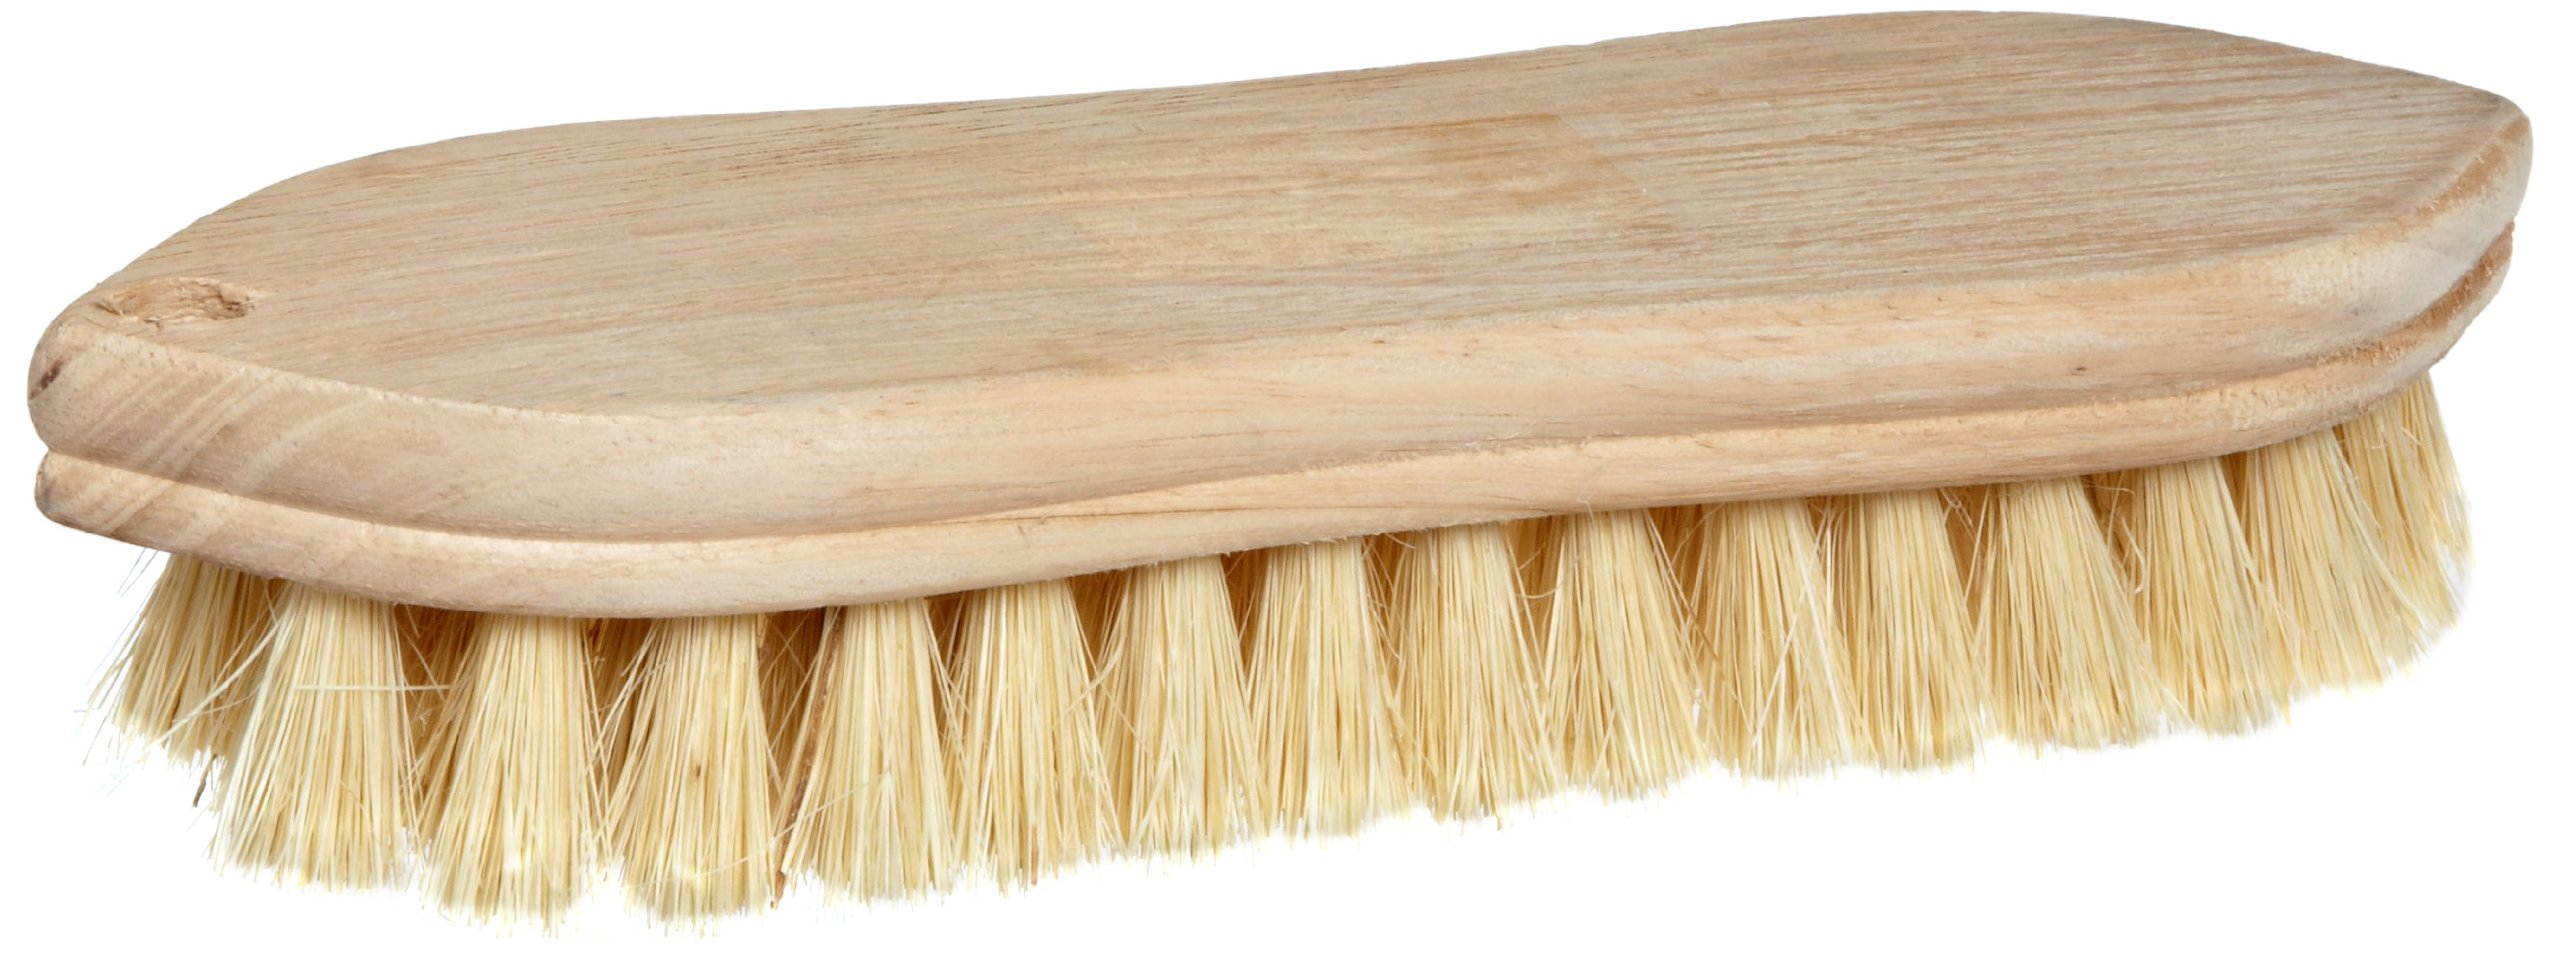 Weiler 9'' Block Size, White Tampico Fill, Pointed Wood Block, Hand Scrub Brush